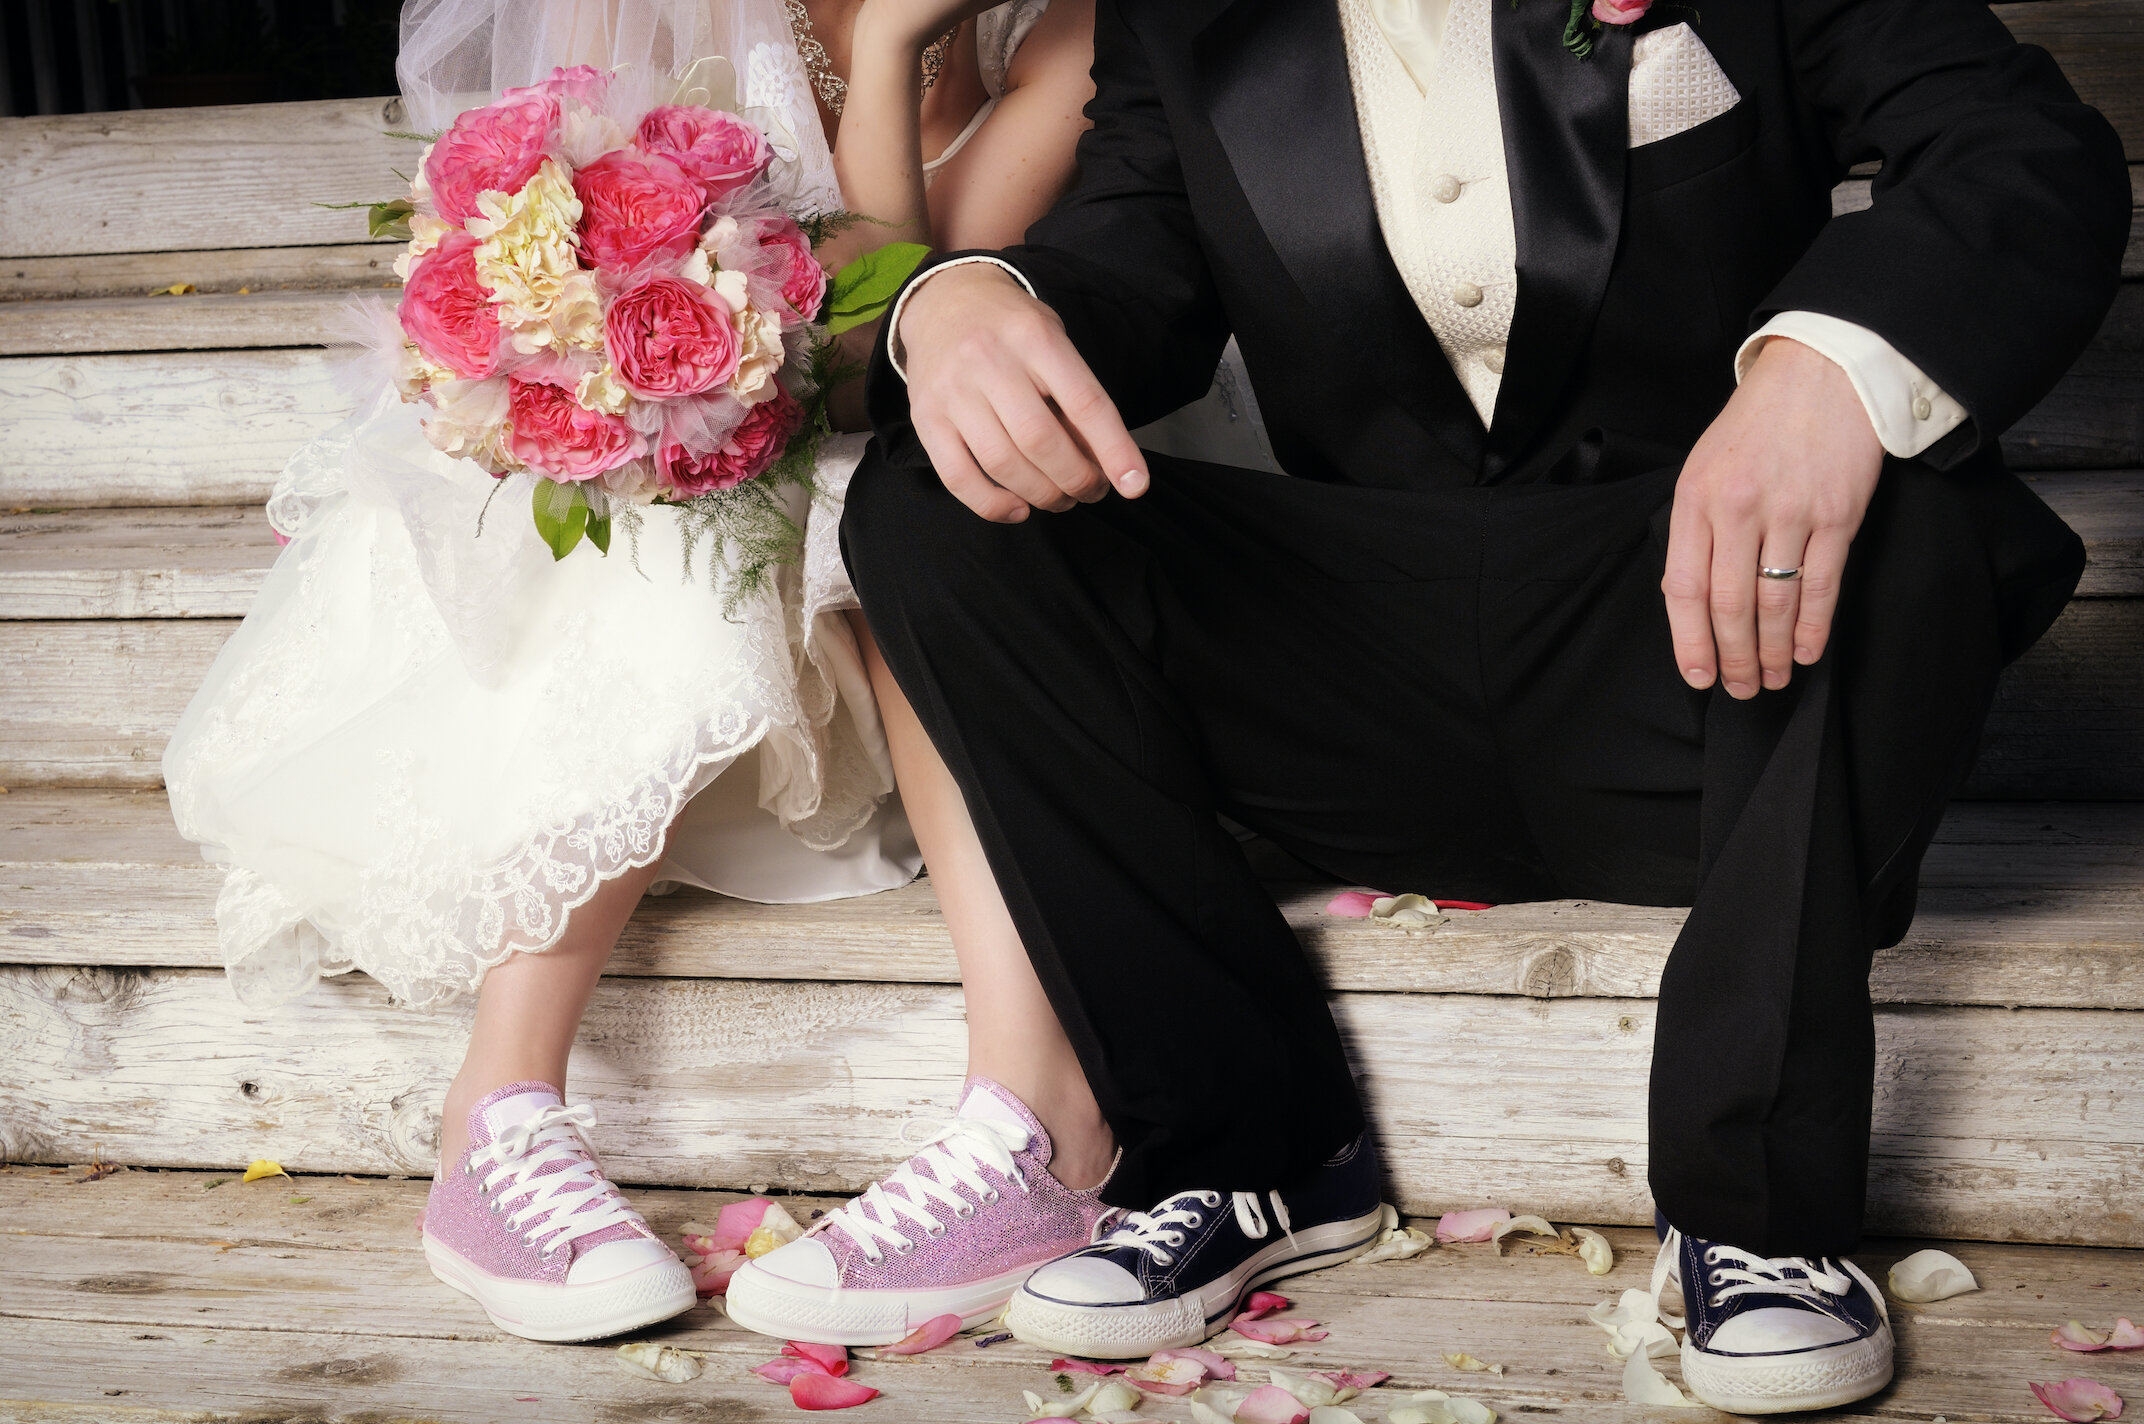 bride and groom shoes on wedding day.jpg